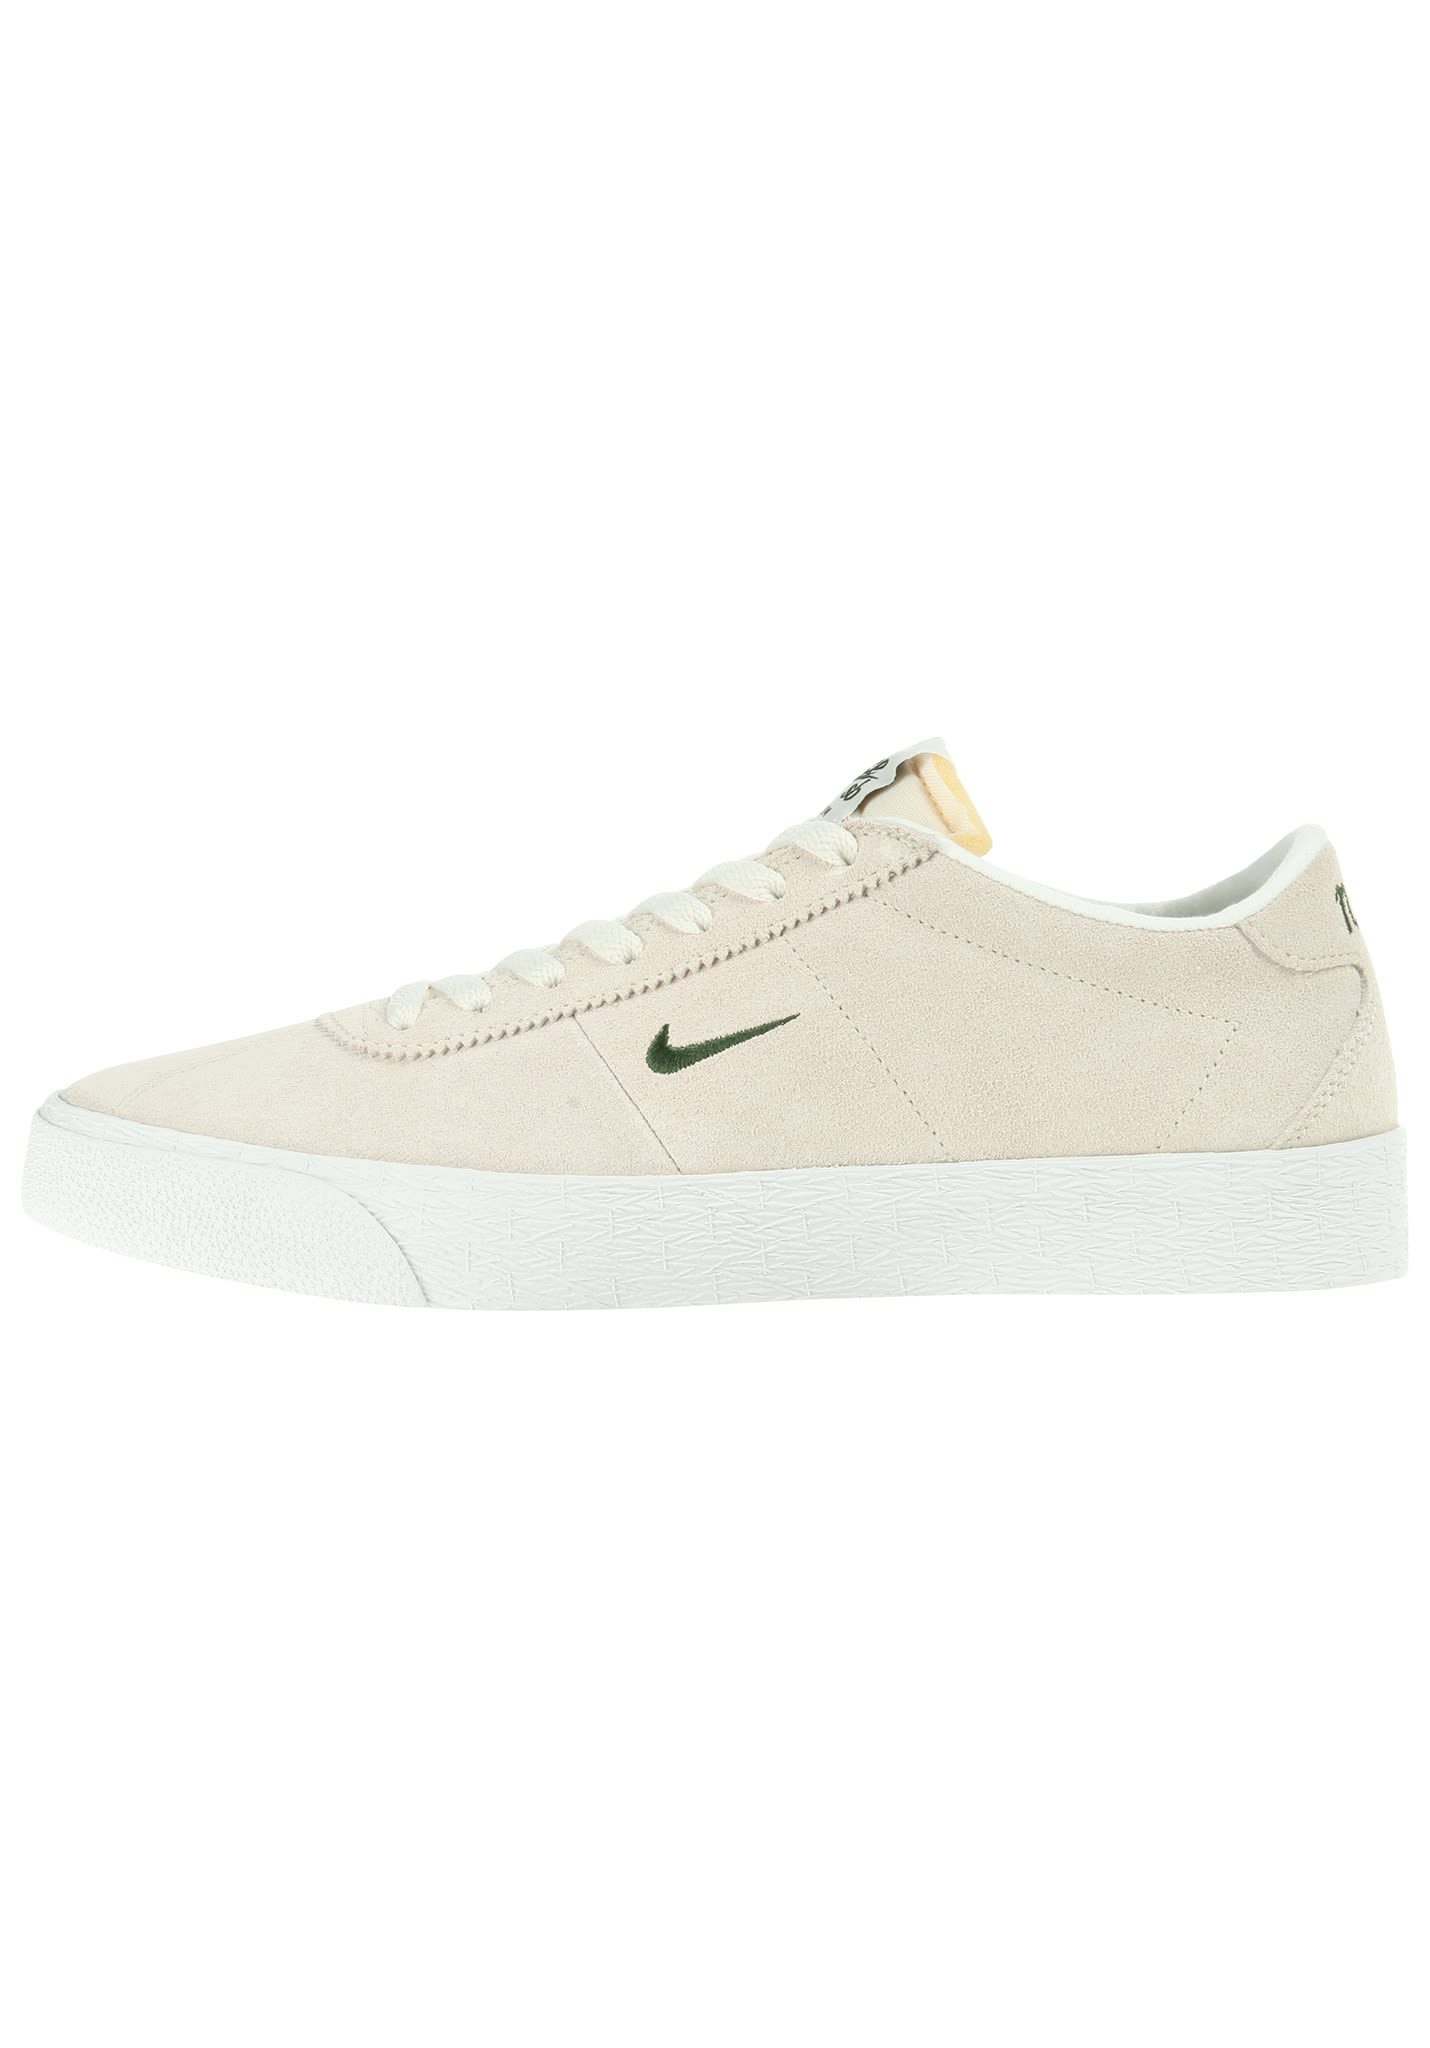 brand new 072f5 c30a6 NIKE SB Zoom Bruin - Sneakers voor Heren - Beige - Planet Sports